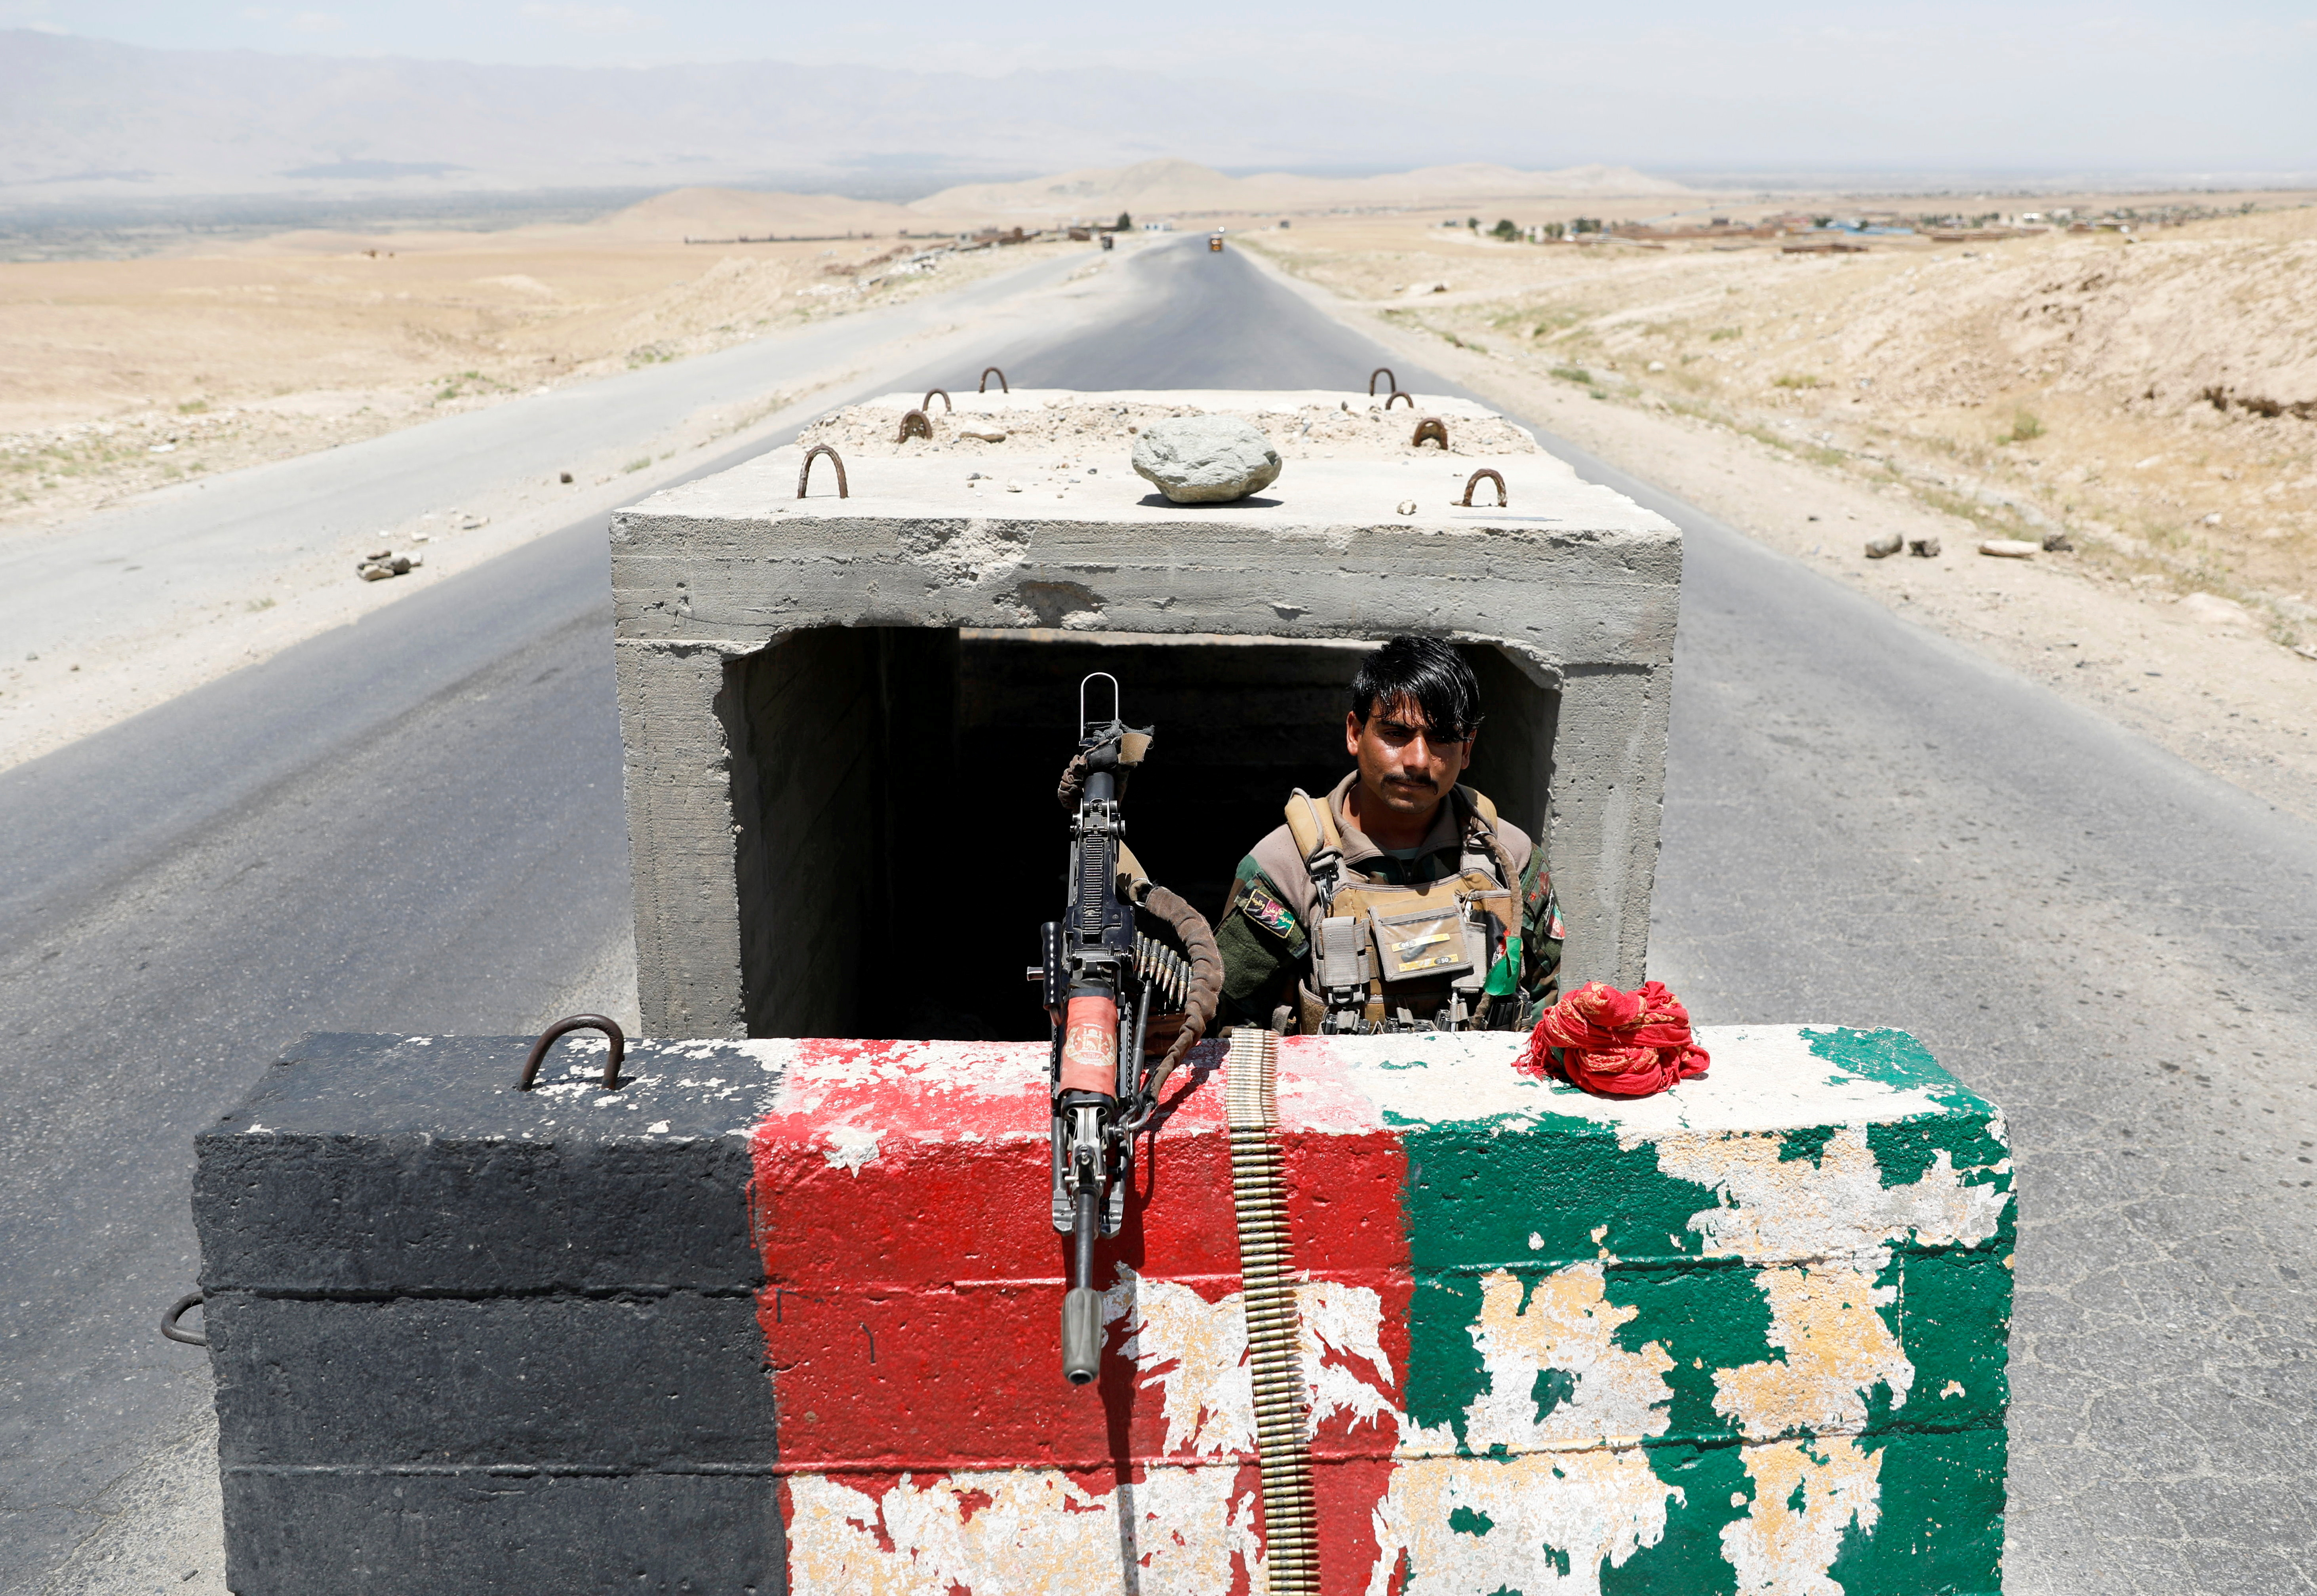 An Afghan National Army soldier stands guard at a checkpoint near Bagram U.S. air base, on the day the last of American troops vacated it, Parwan province, Afghanistan July 2, 2021. REUTERS/Mohammad Ismail/File Photo